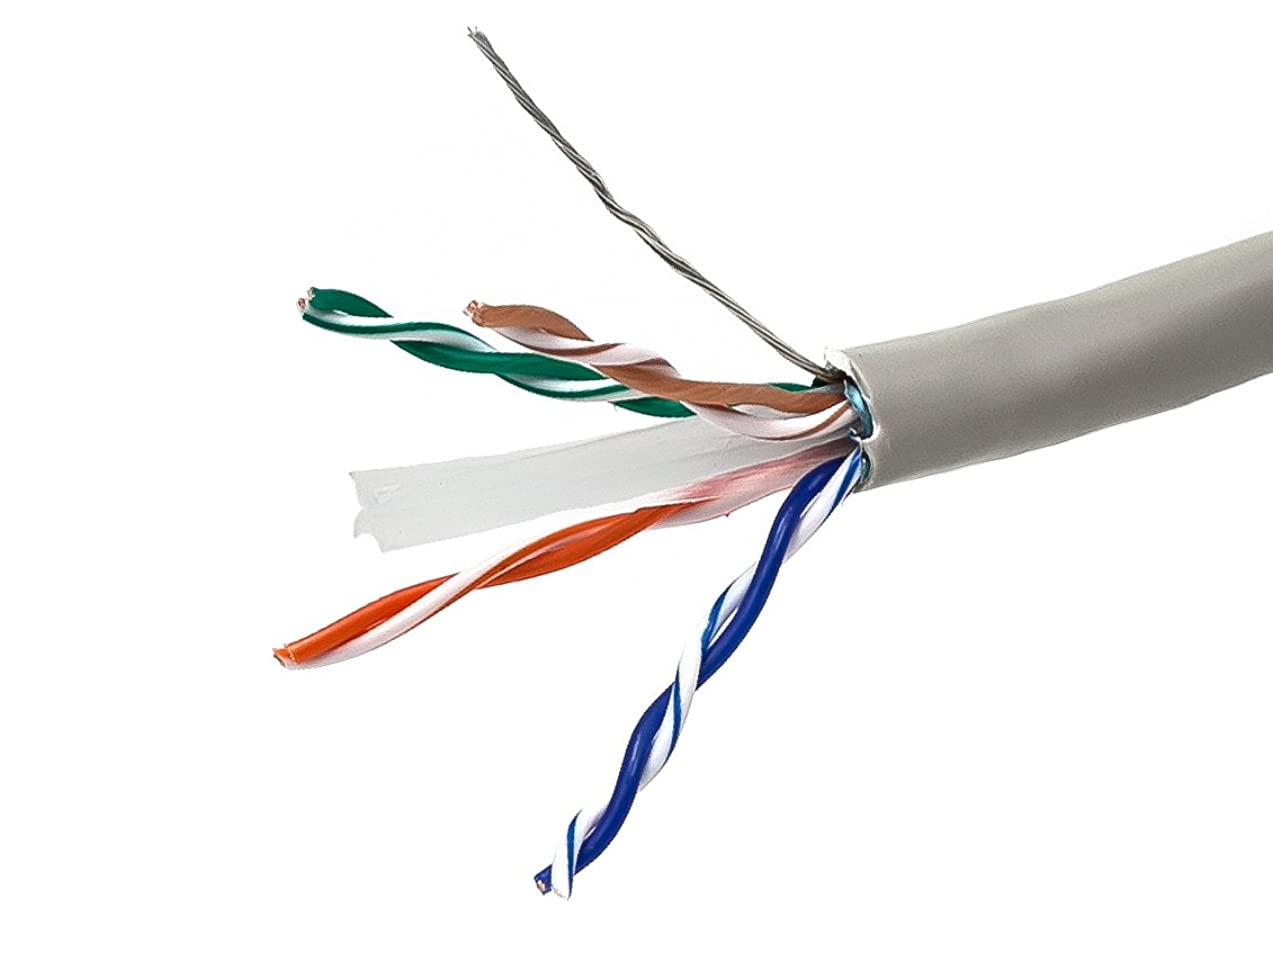 Monoprice 1000FT Cat 6 Bulk Bare Copper Ethernet Network Cable STP, Stranded, In-Wall Rated (CM), 550MHz, 24AWG - Gray